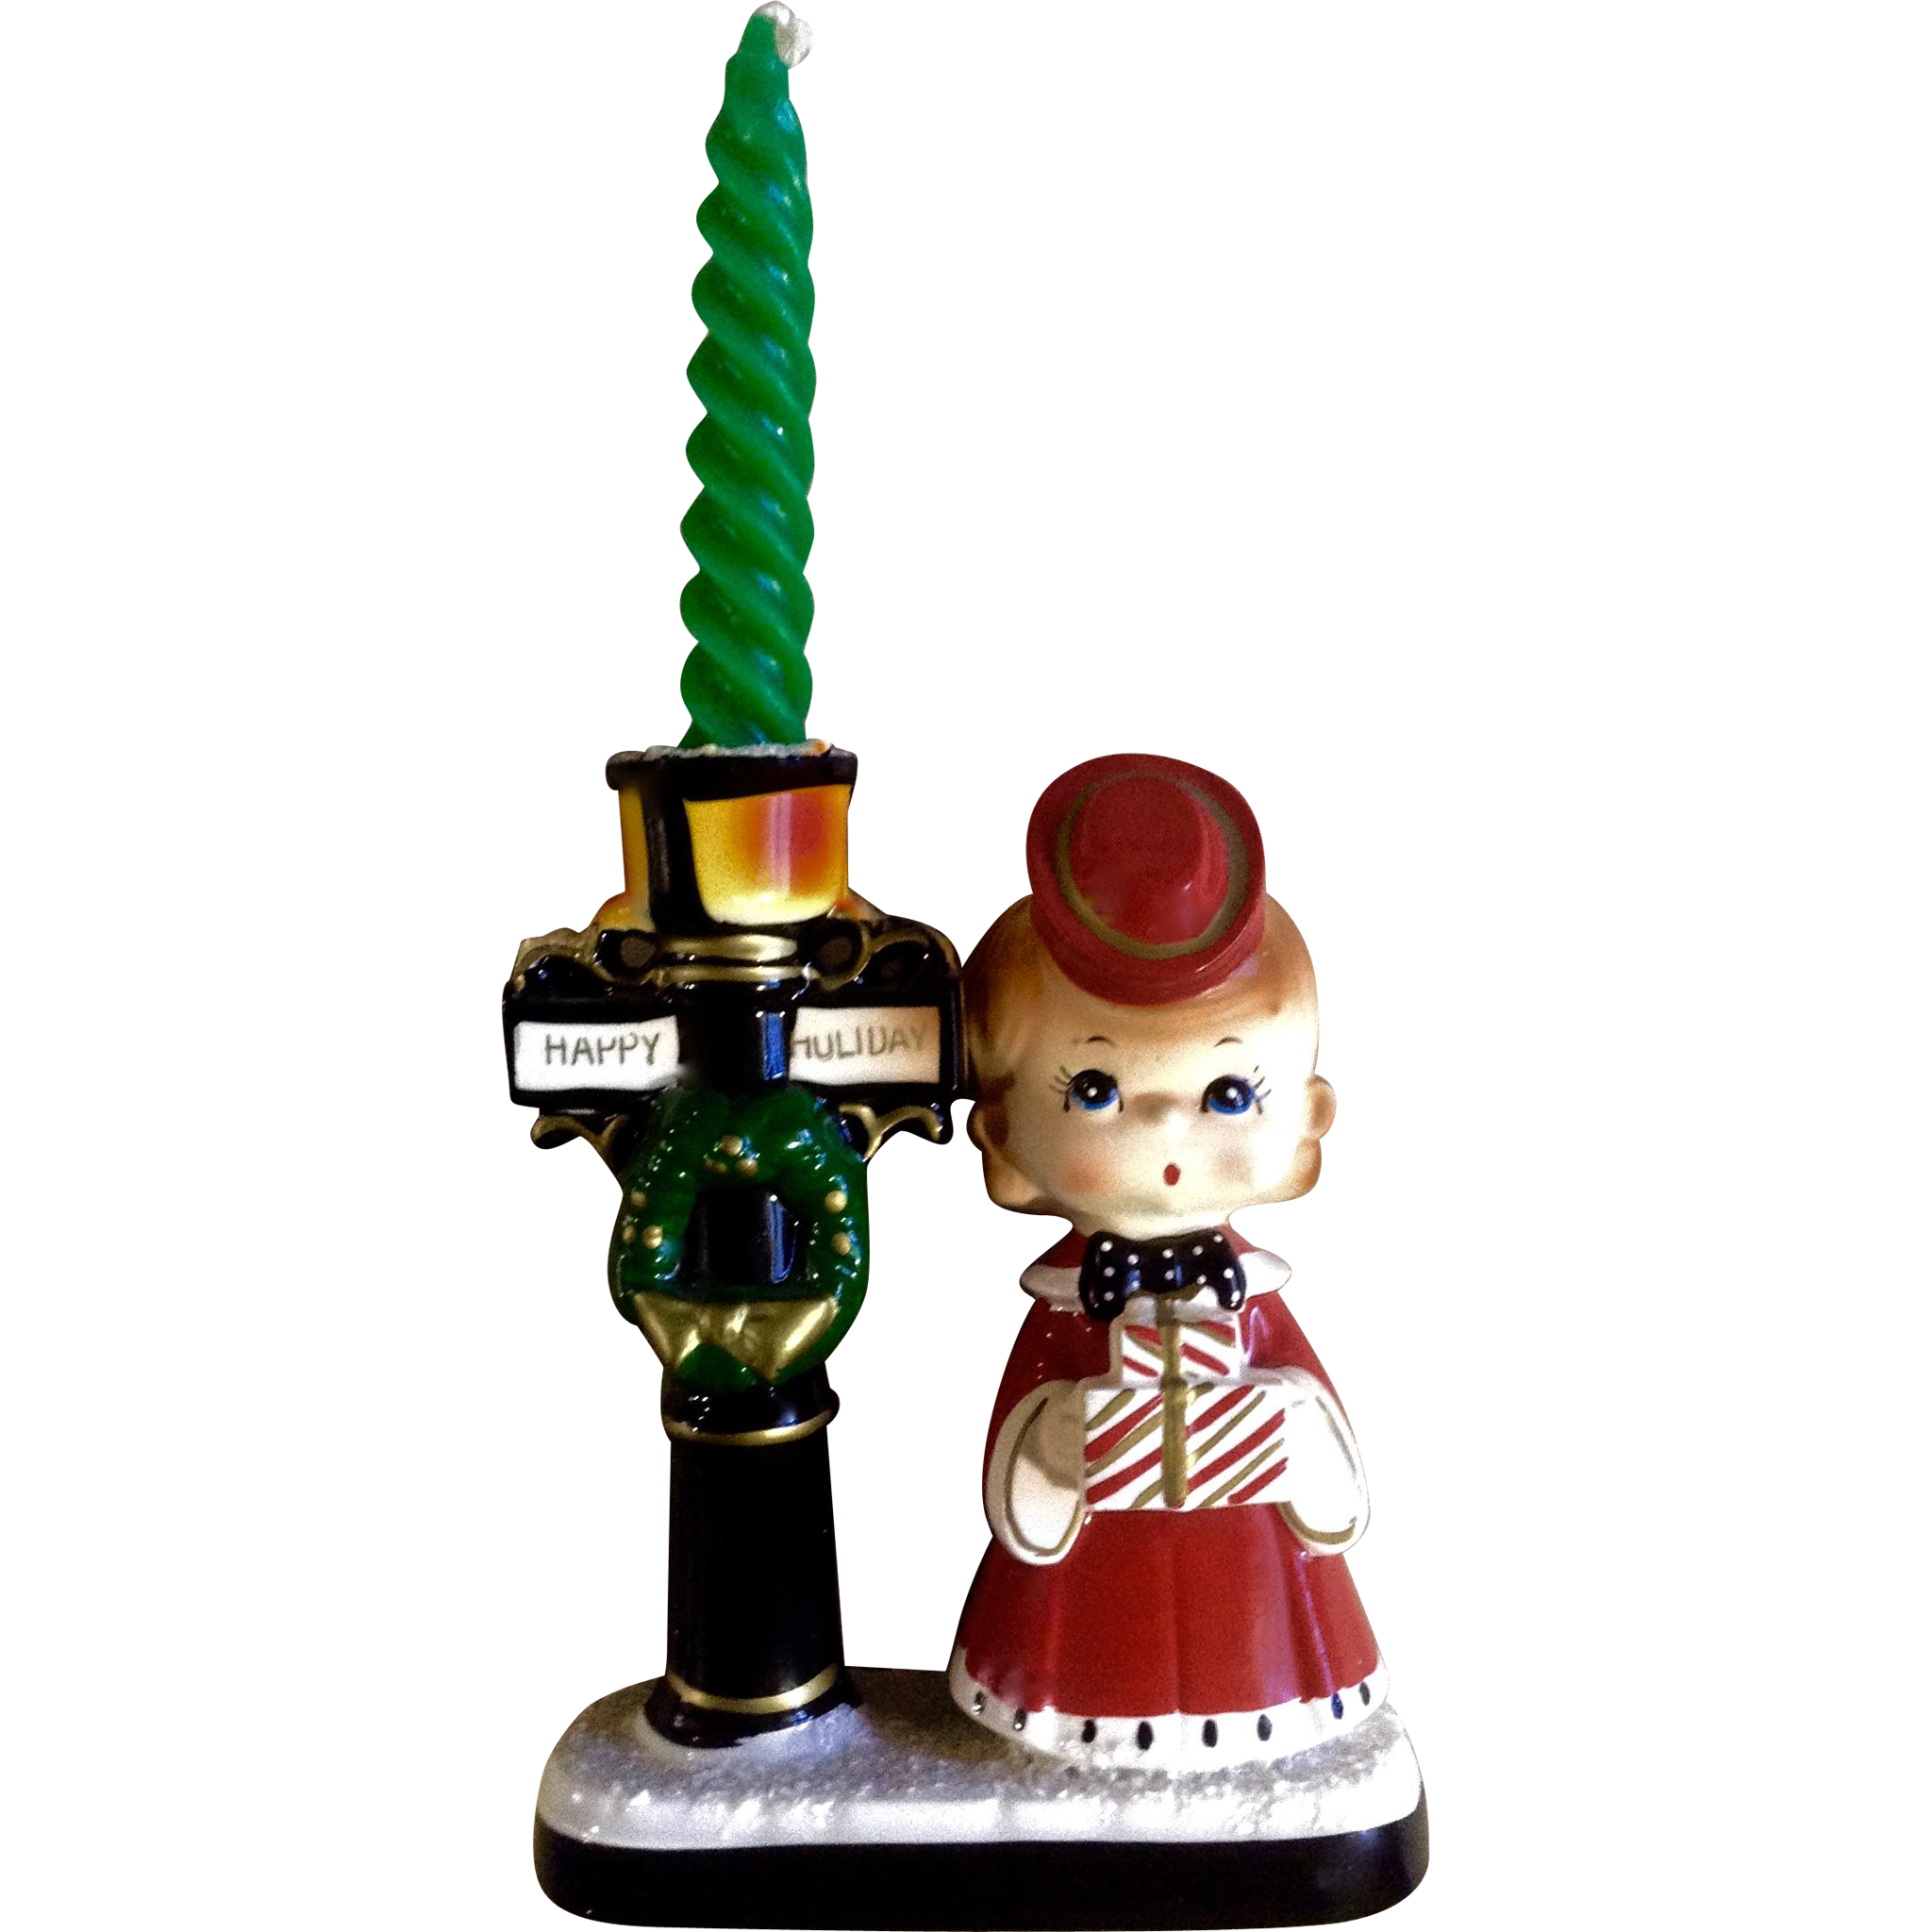 Singing Carolers Candleholders Figurines Vintage By: Blume The Christmas Corner, Happy Holiday Candle Stick